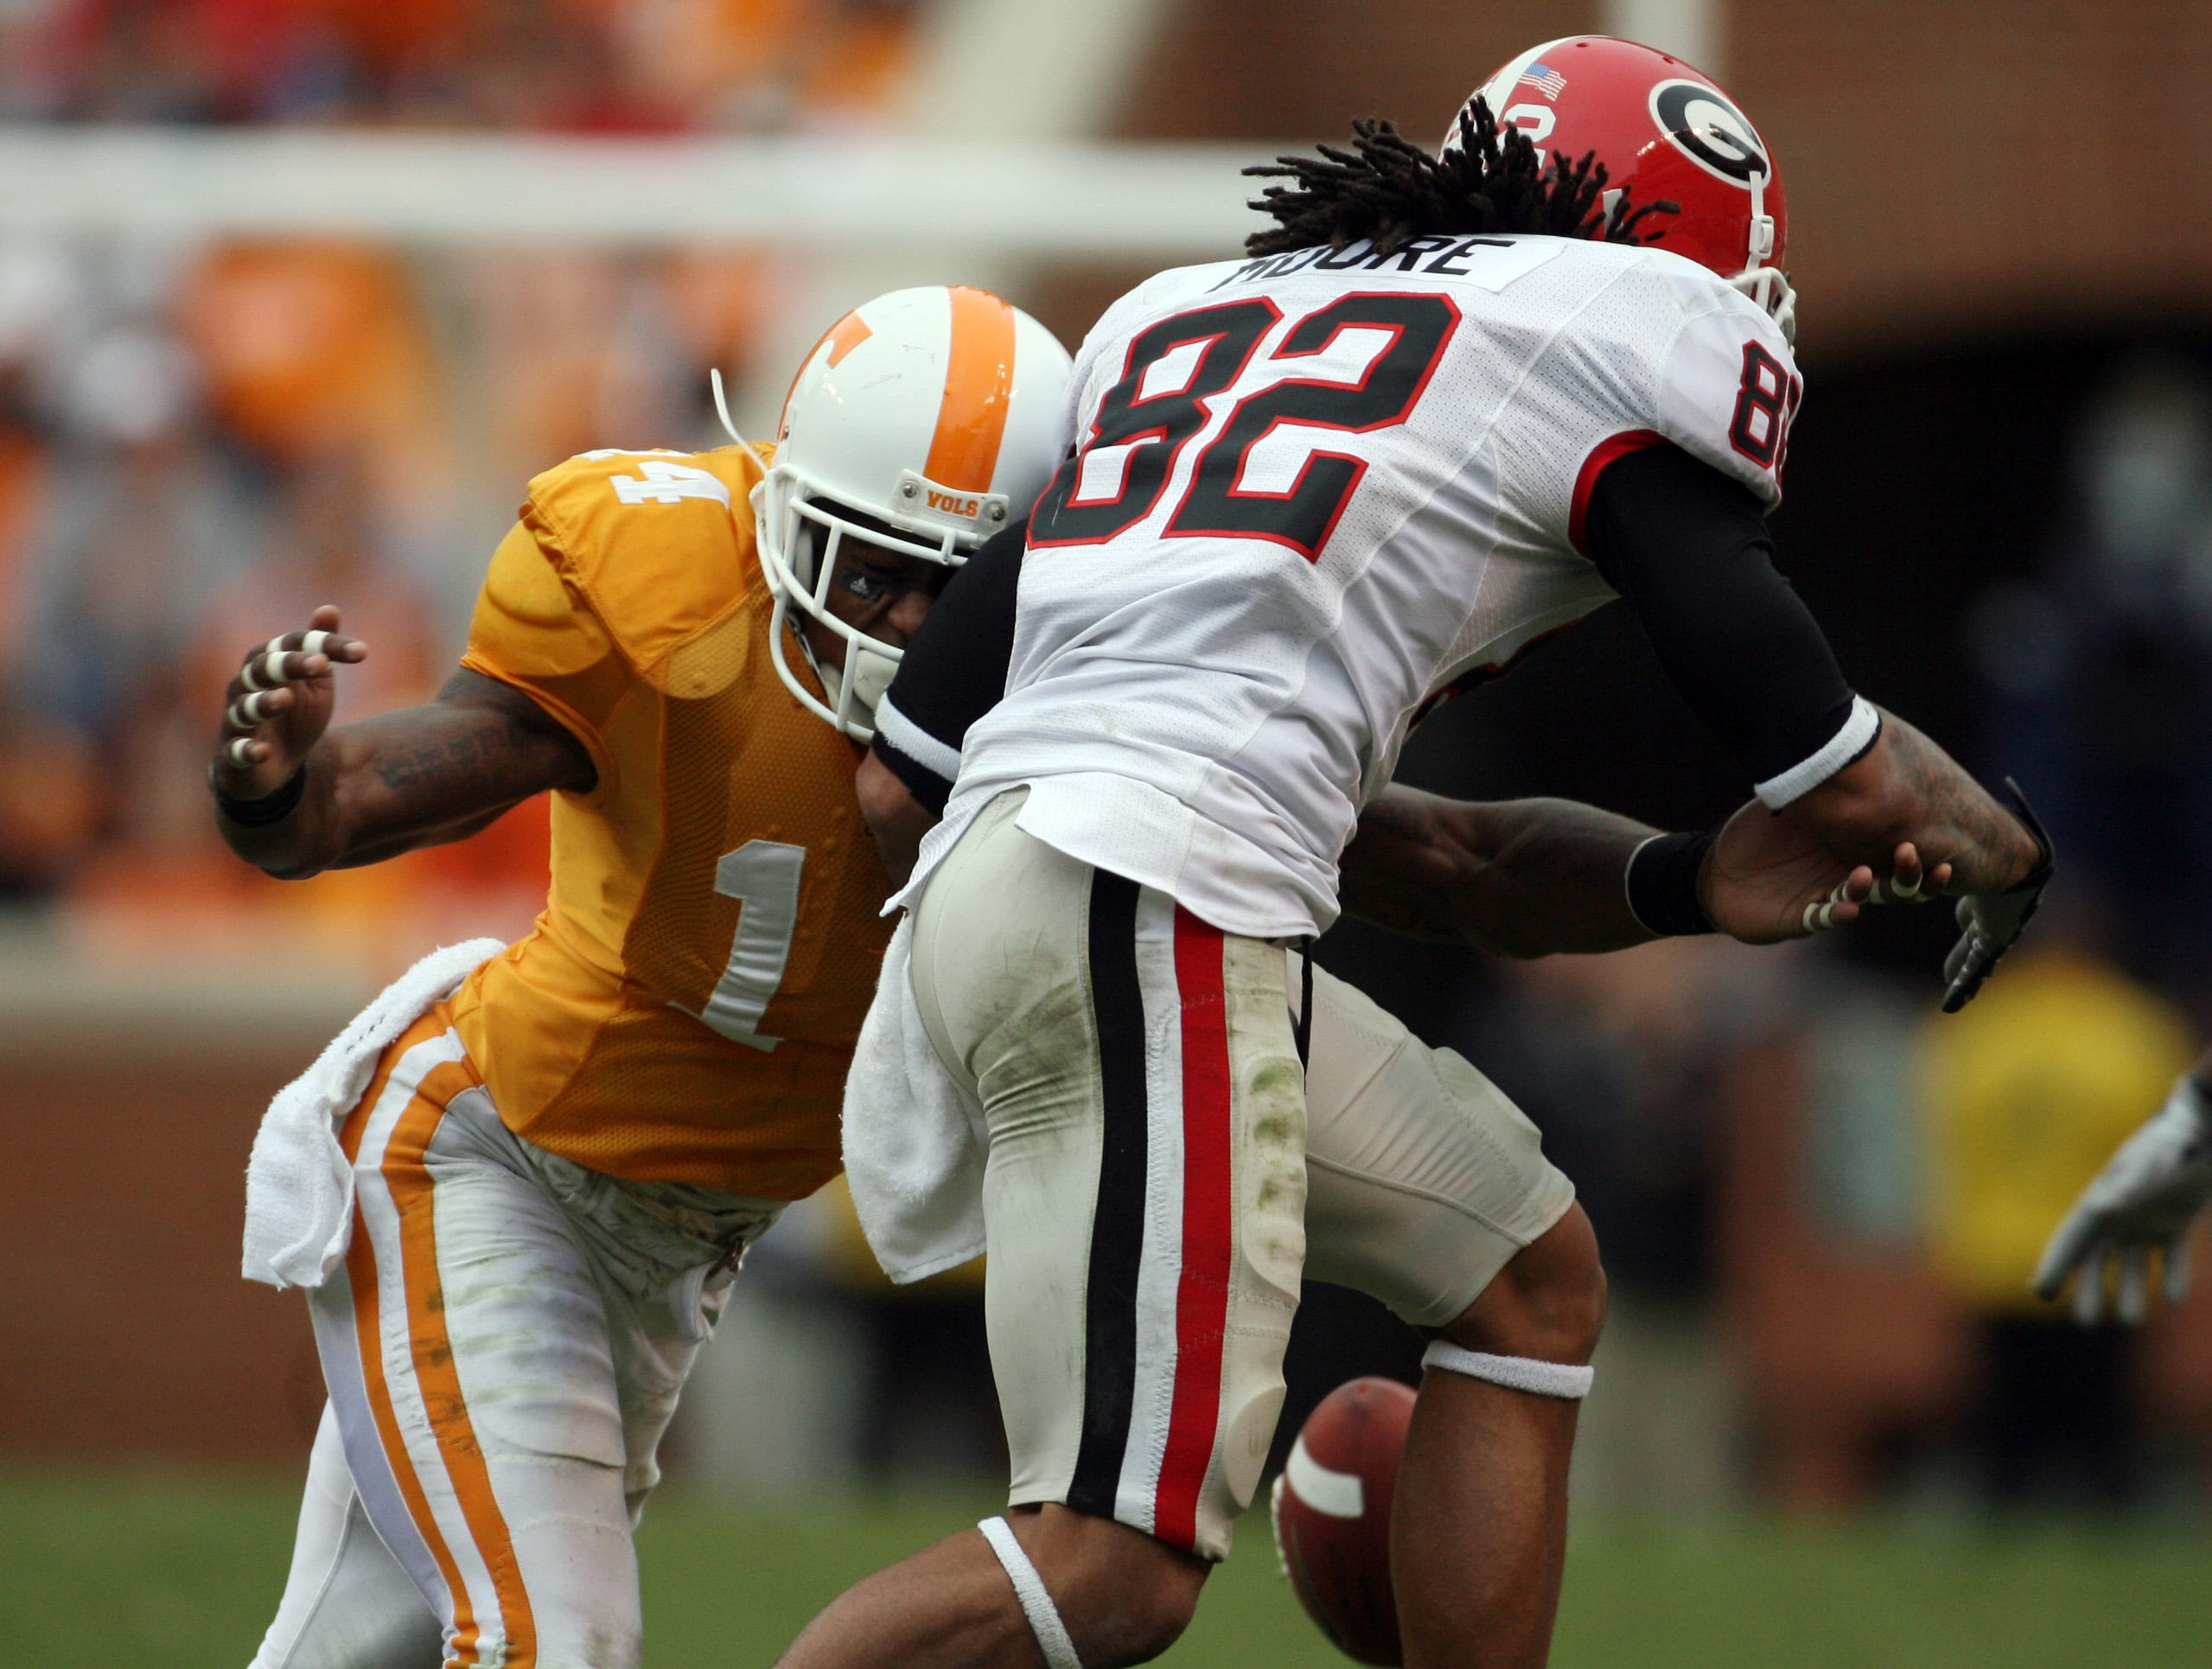 Tennessee cornerback Eric Berry (14) breaks up a pass intended for Georgia wide receiver Michael Moore (82) on Saturday, Oct. 10, 2009 at Neyland Stadium.